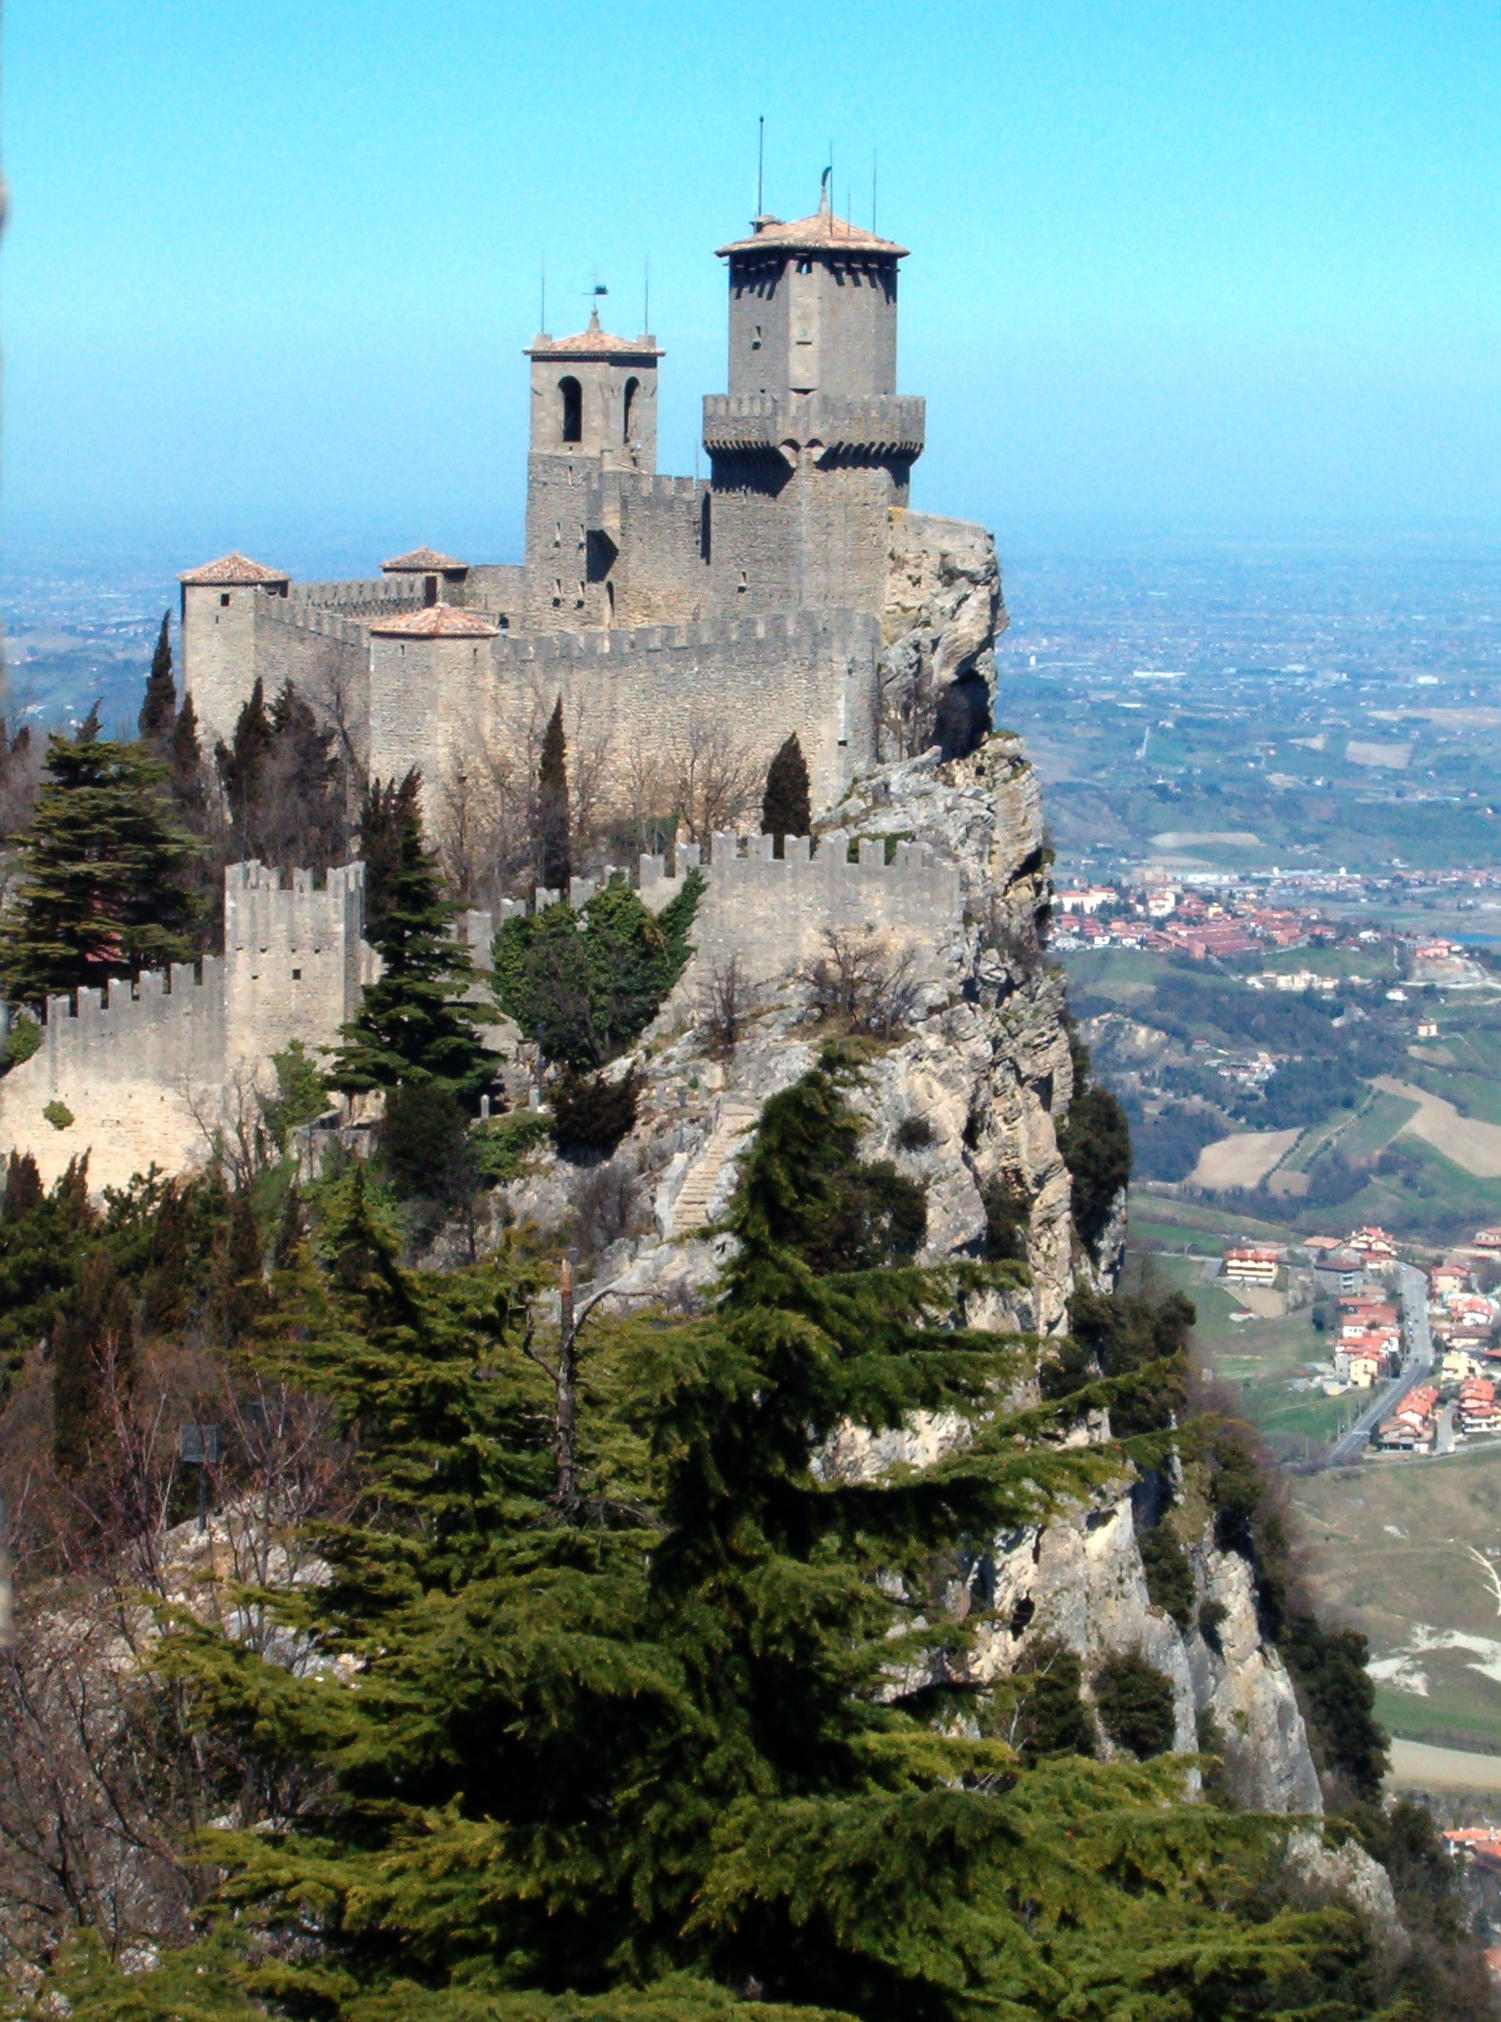 San Marino San Marino  city photos : San Marino castello 2 Wikipedia